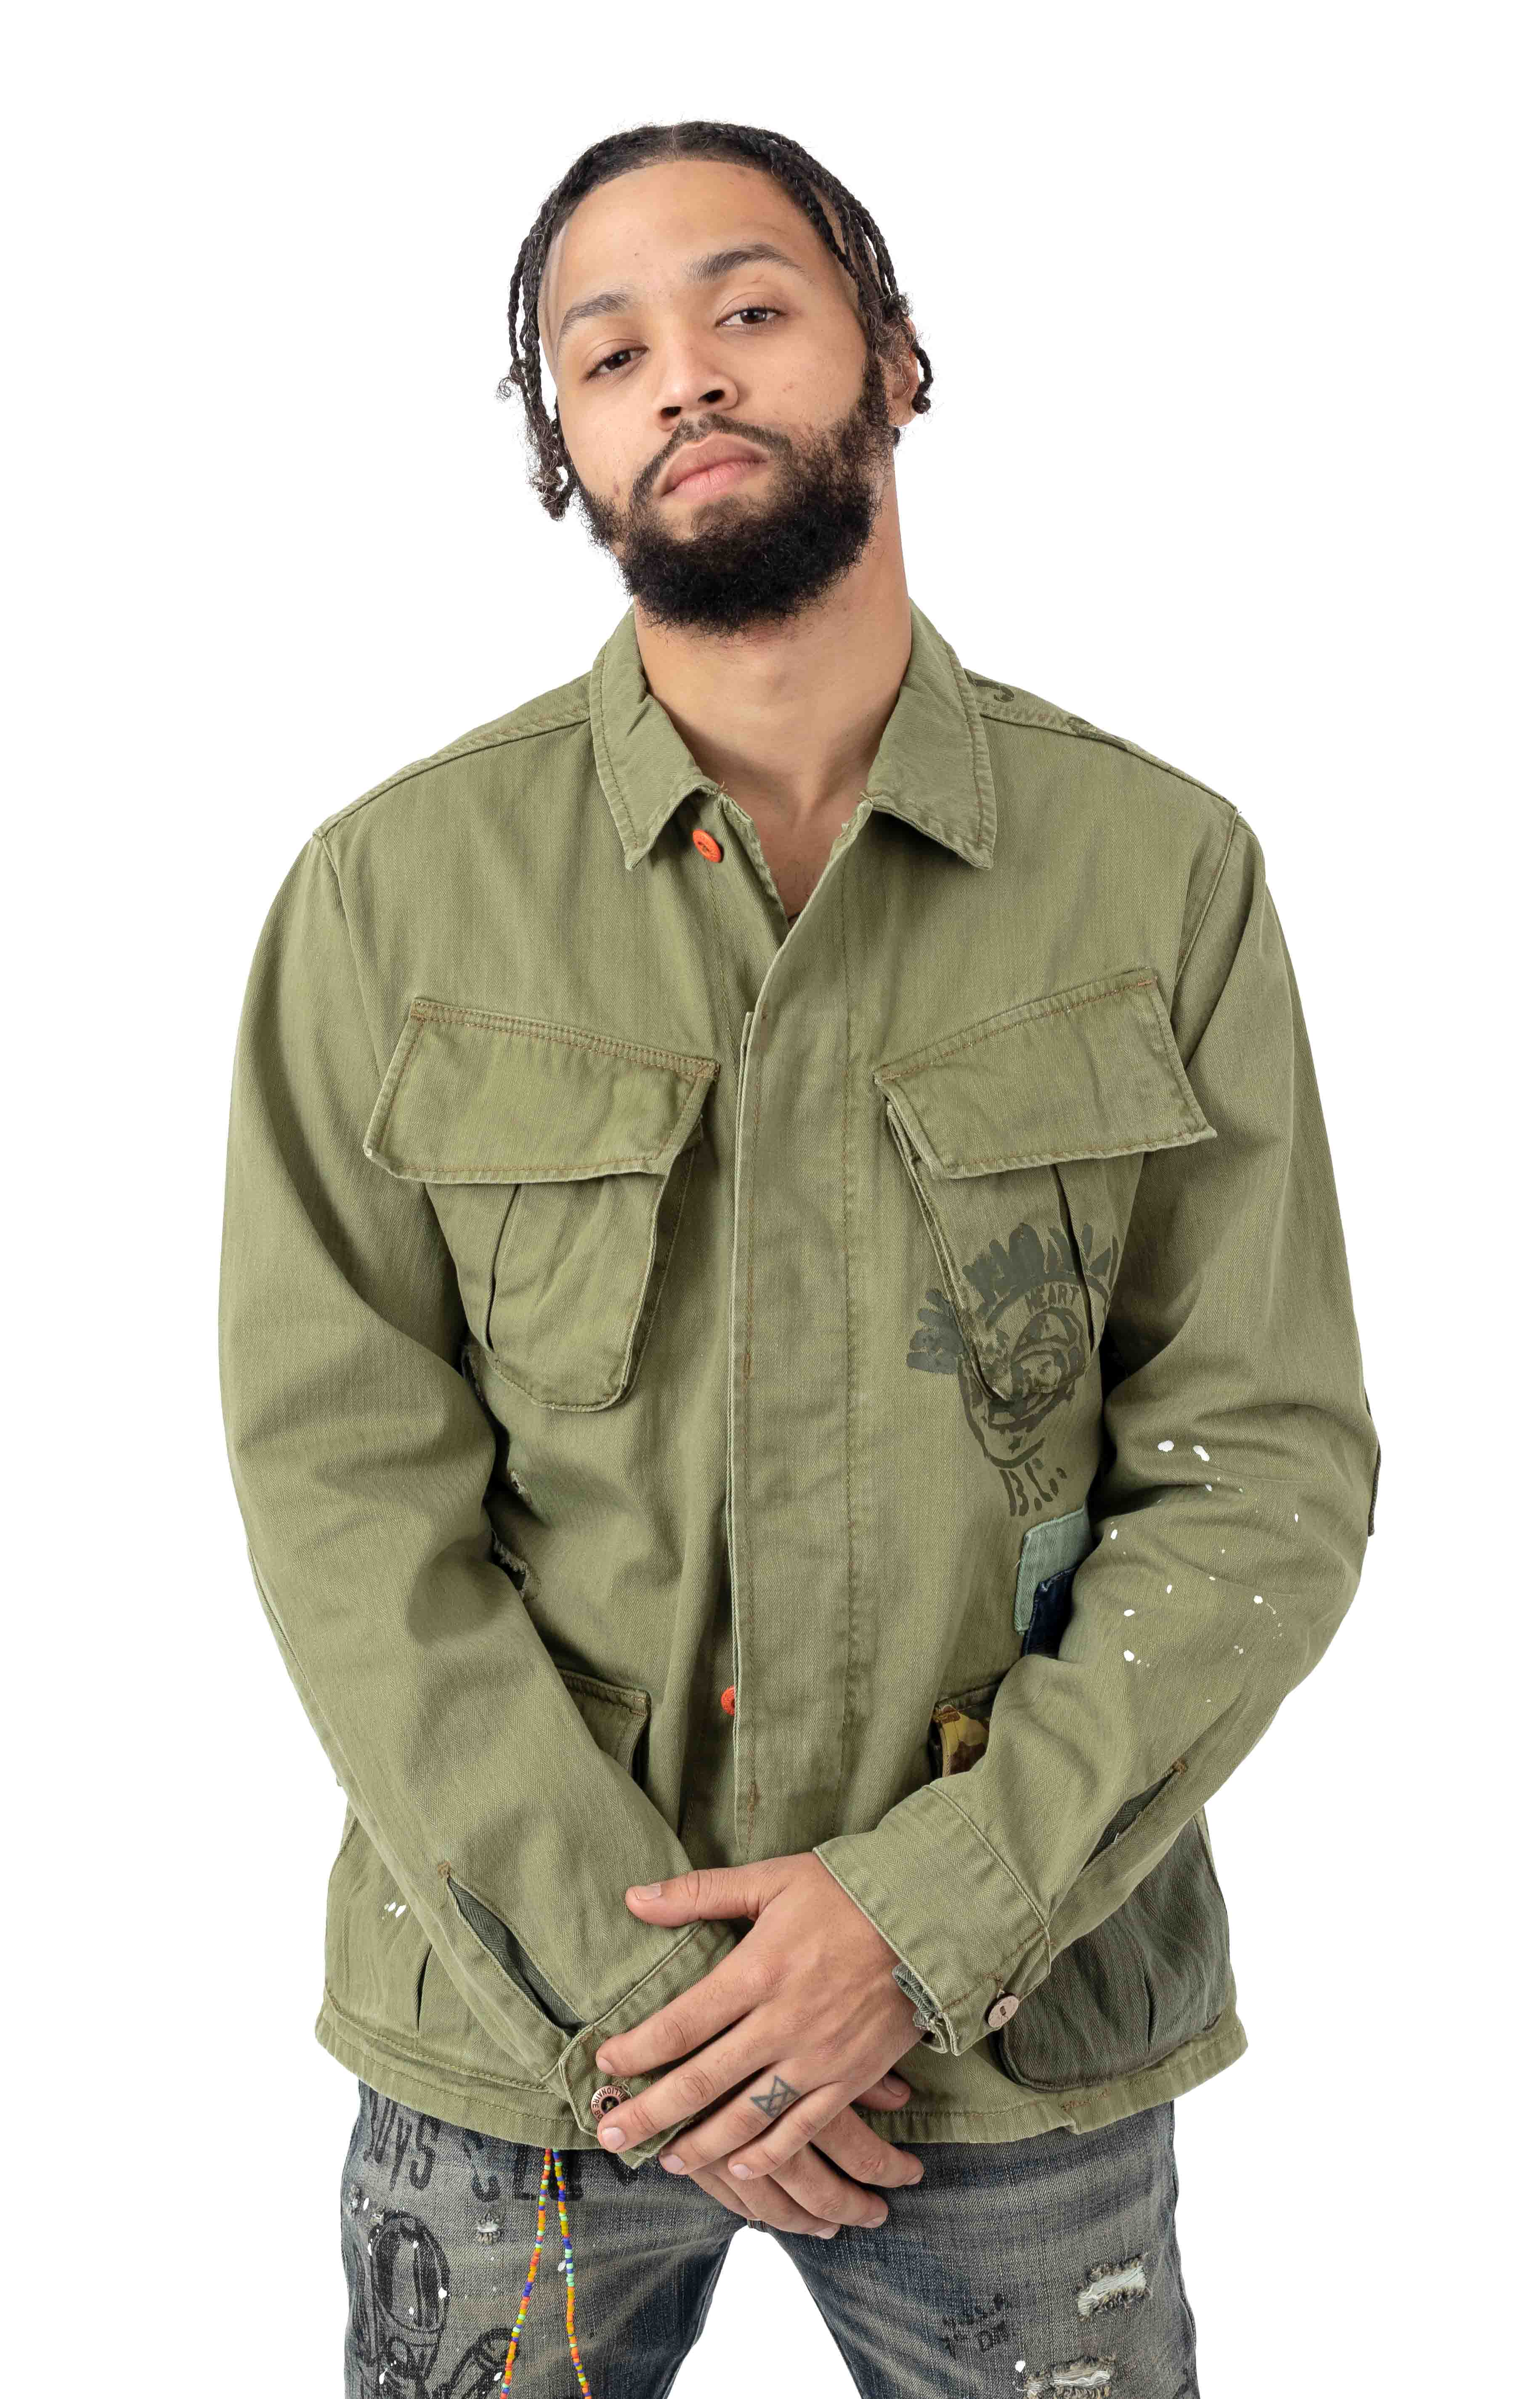 BB Fatigued Jacket - Loden Green